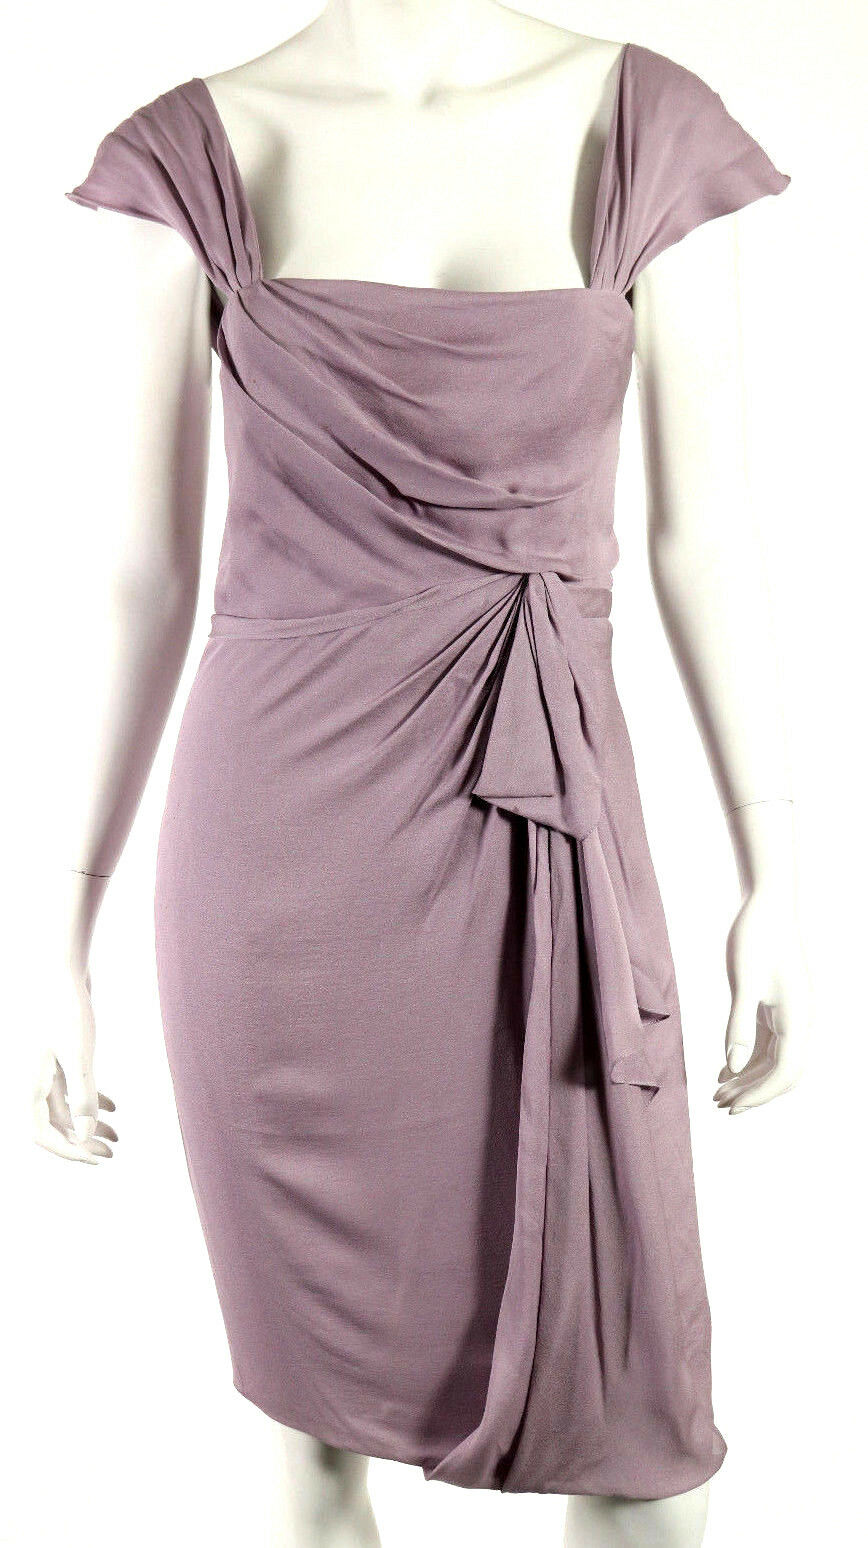 J. MENDEL MENDEL MENDEL Lavender Silk Crepe Cap Sleeve Draped Front Sheath Dress 4 64aca5